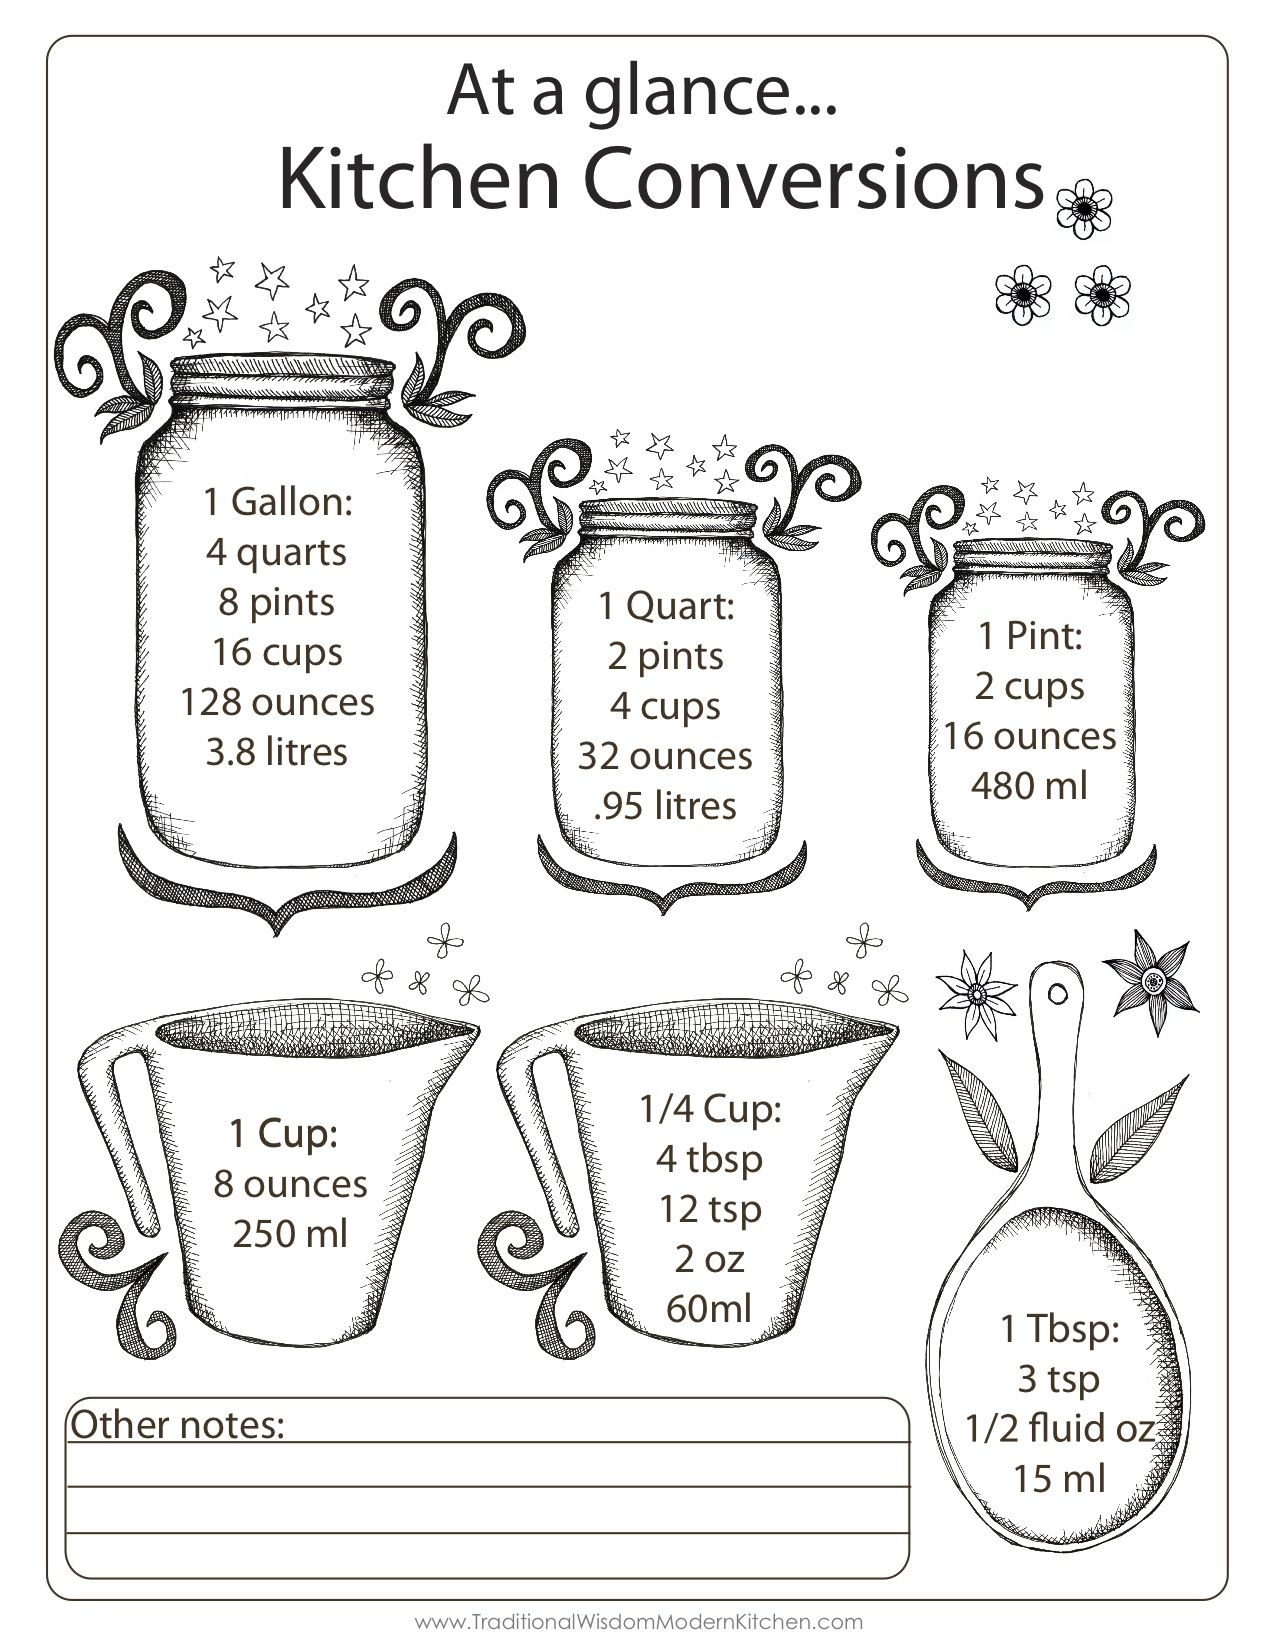 Cute Amp Handy Kitchen Conversions Chart